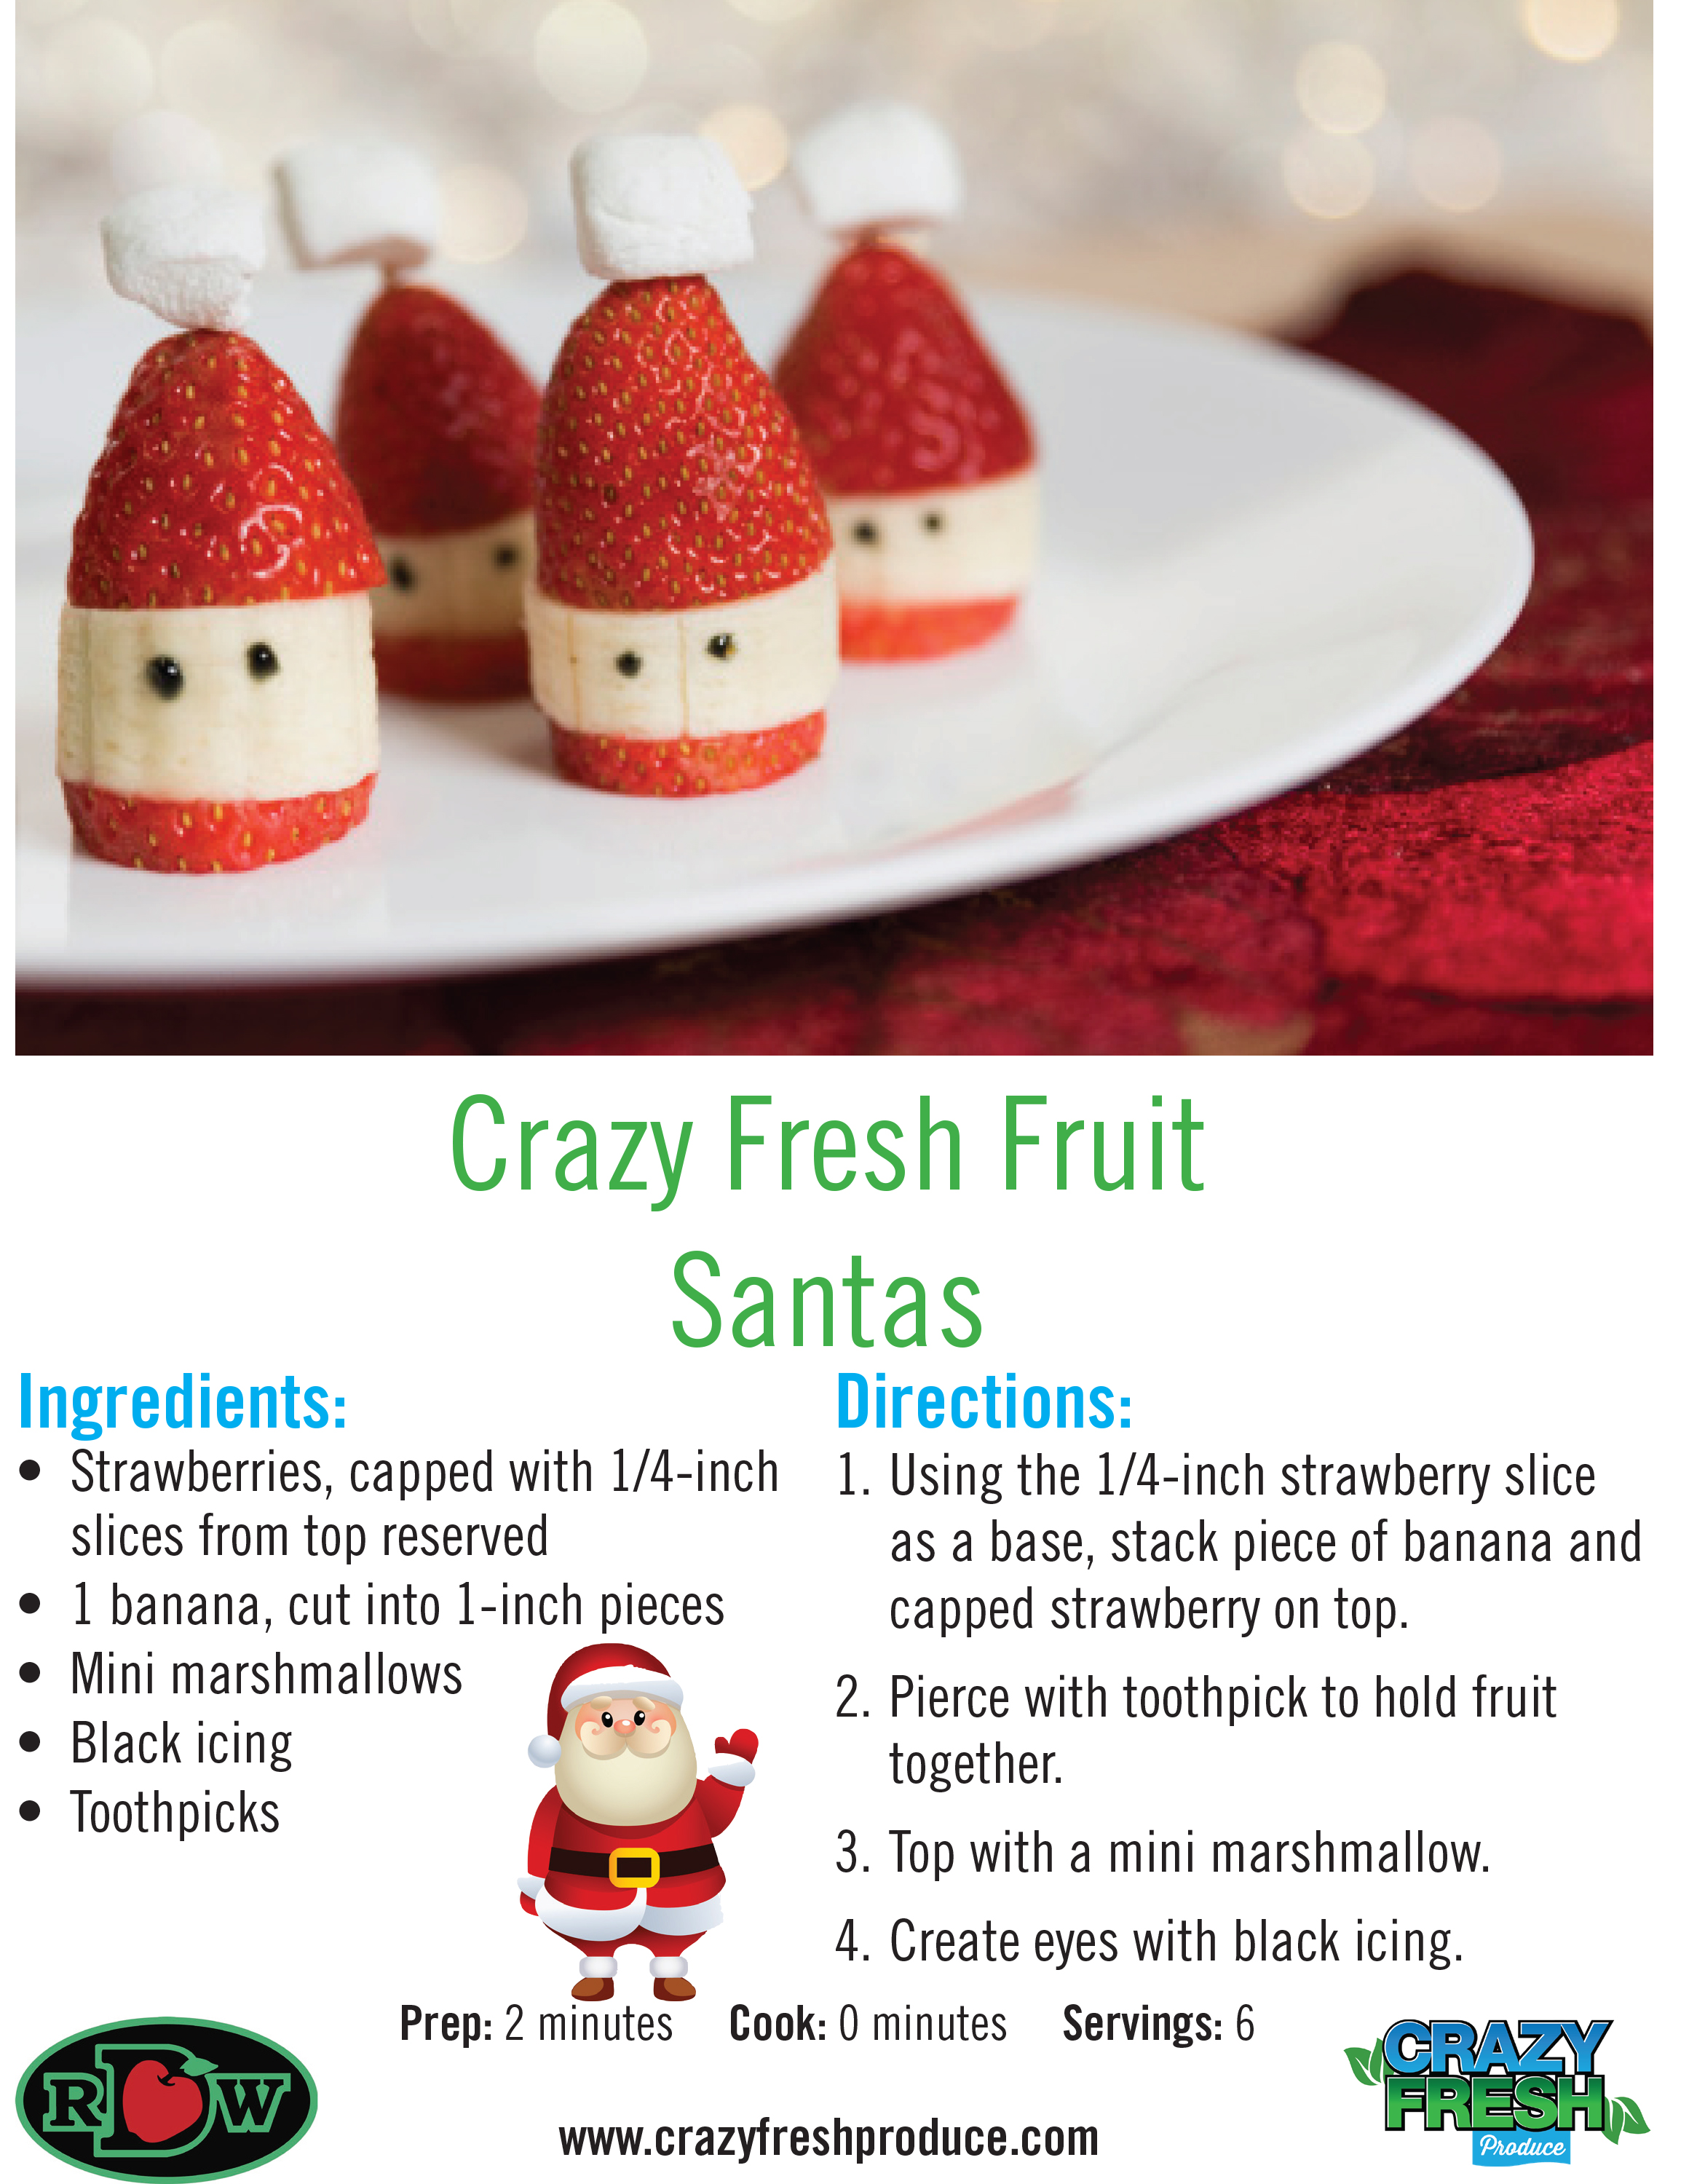 These Santa Claus strawberries are extra-cute for Christmas! Make these with your little ones to celebrate the holiday!